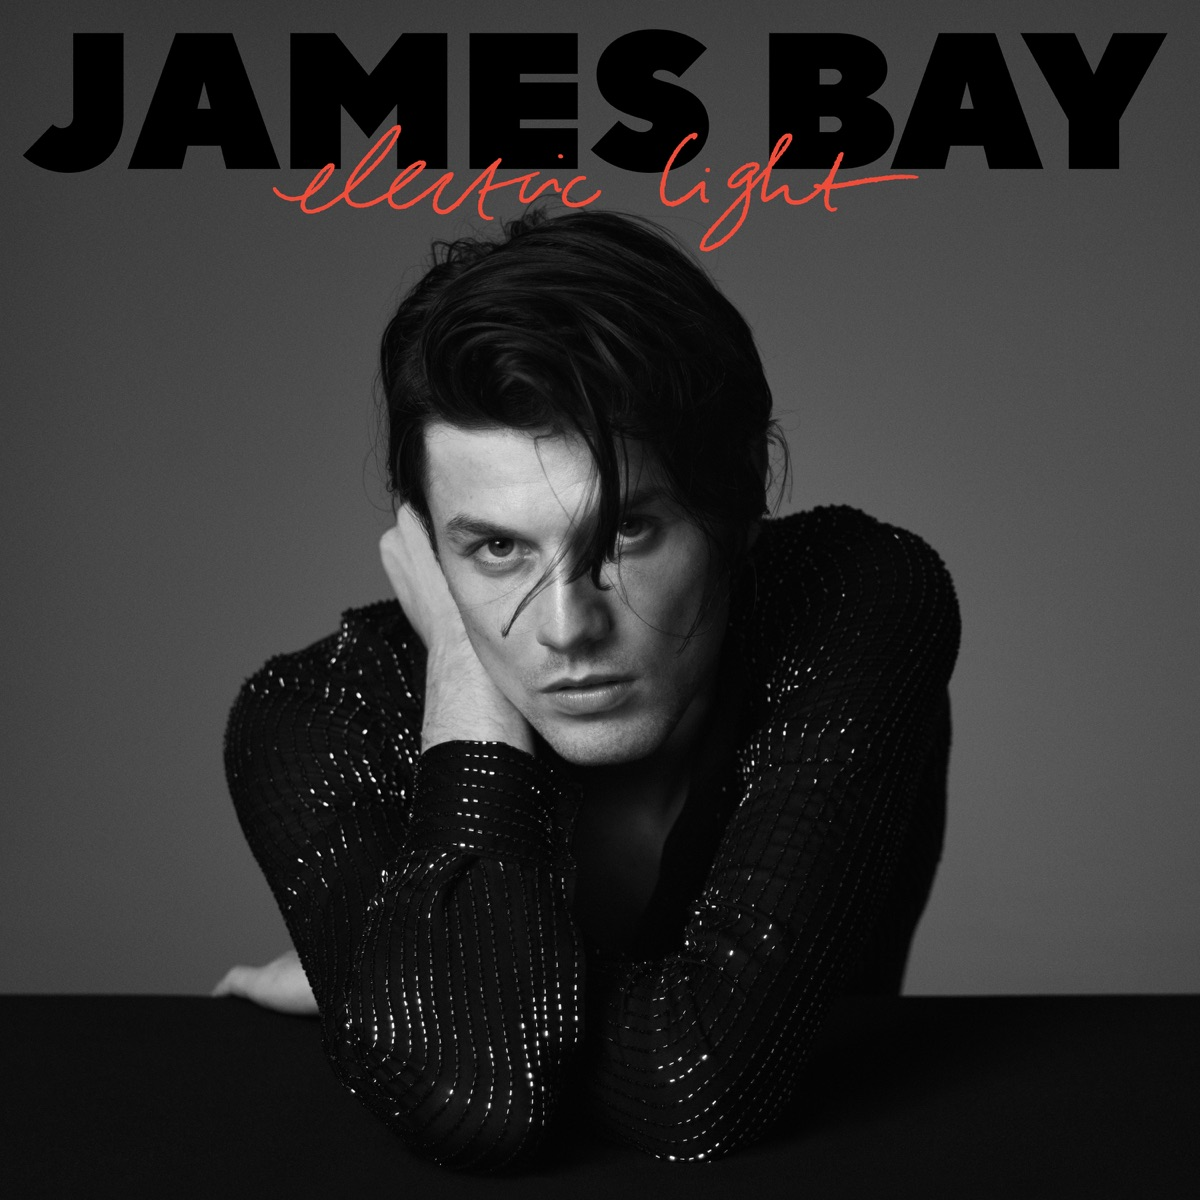 Electric Light James Bay CD cover